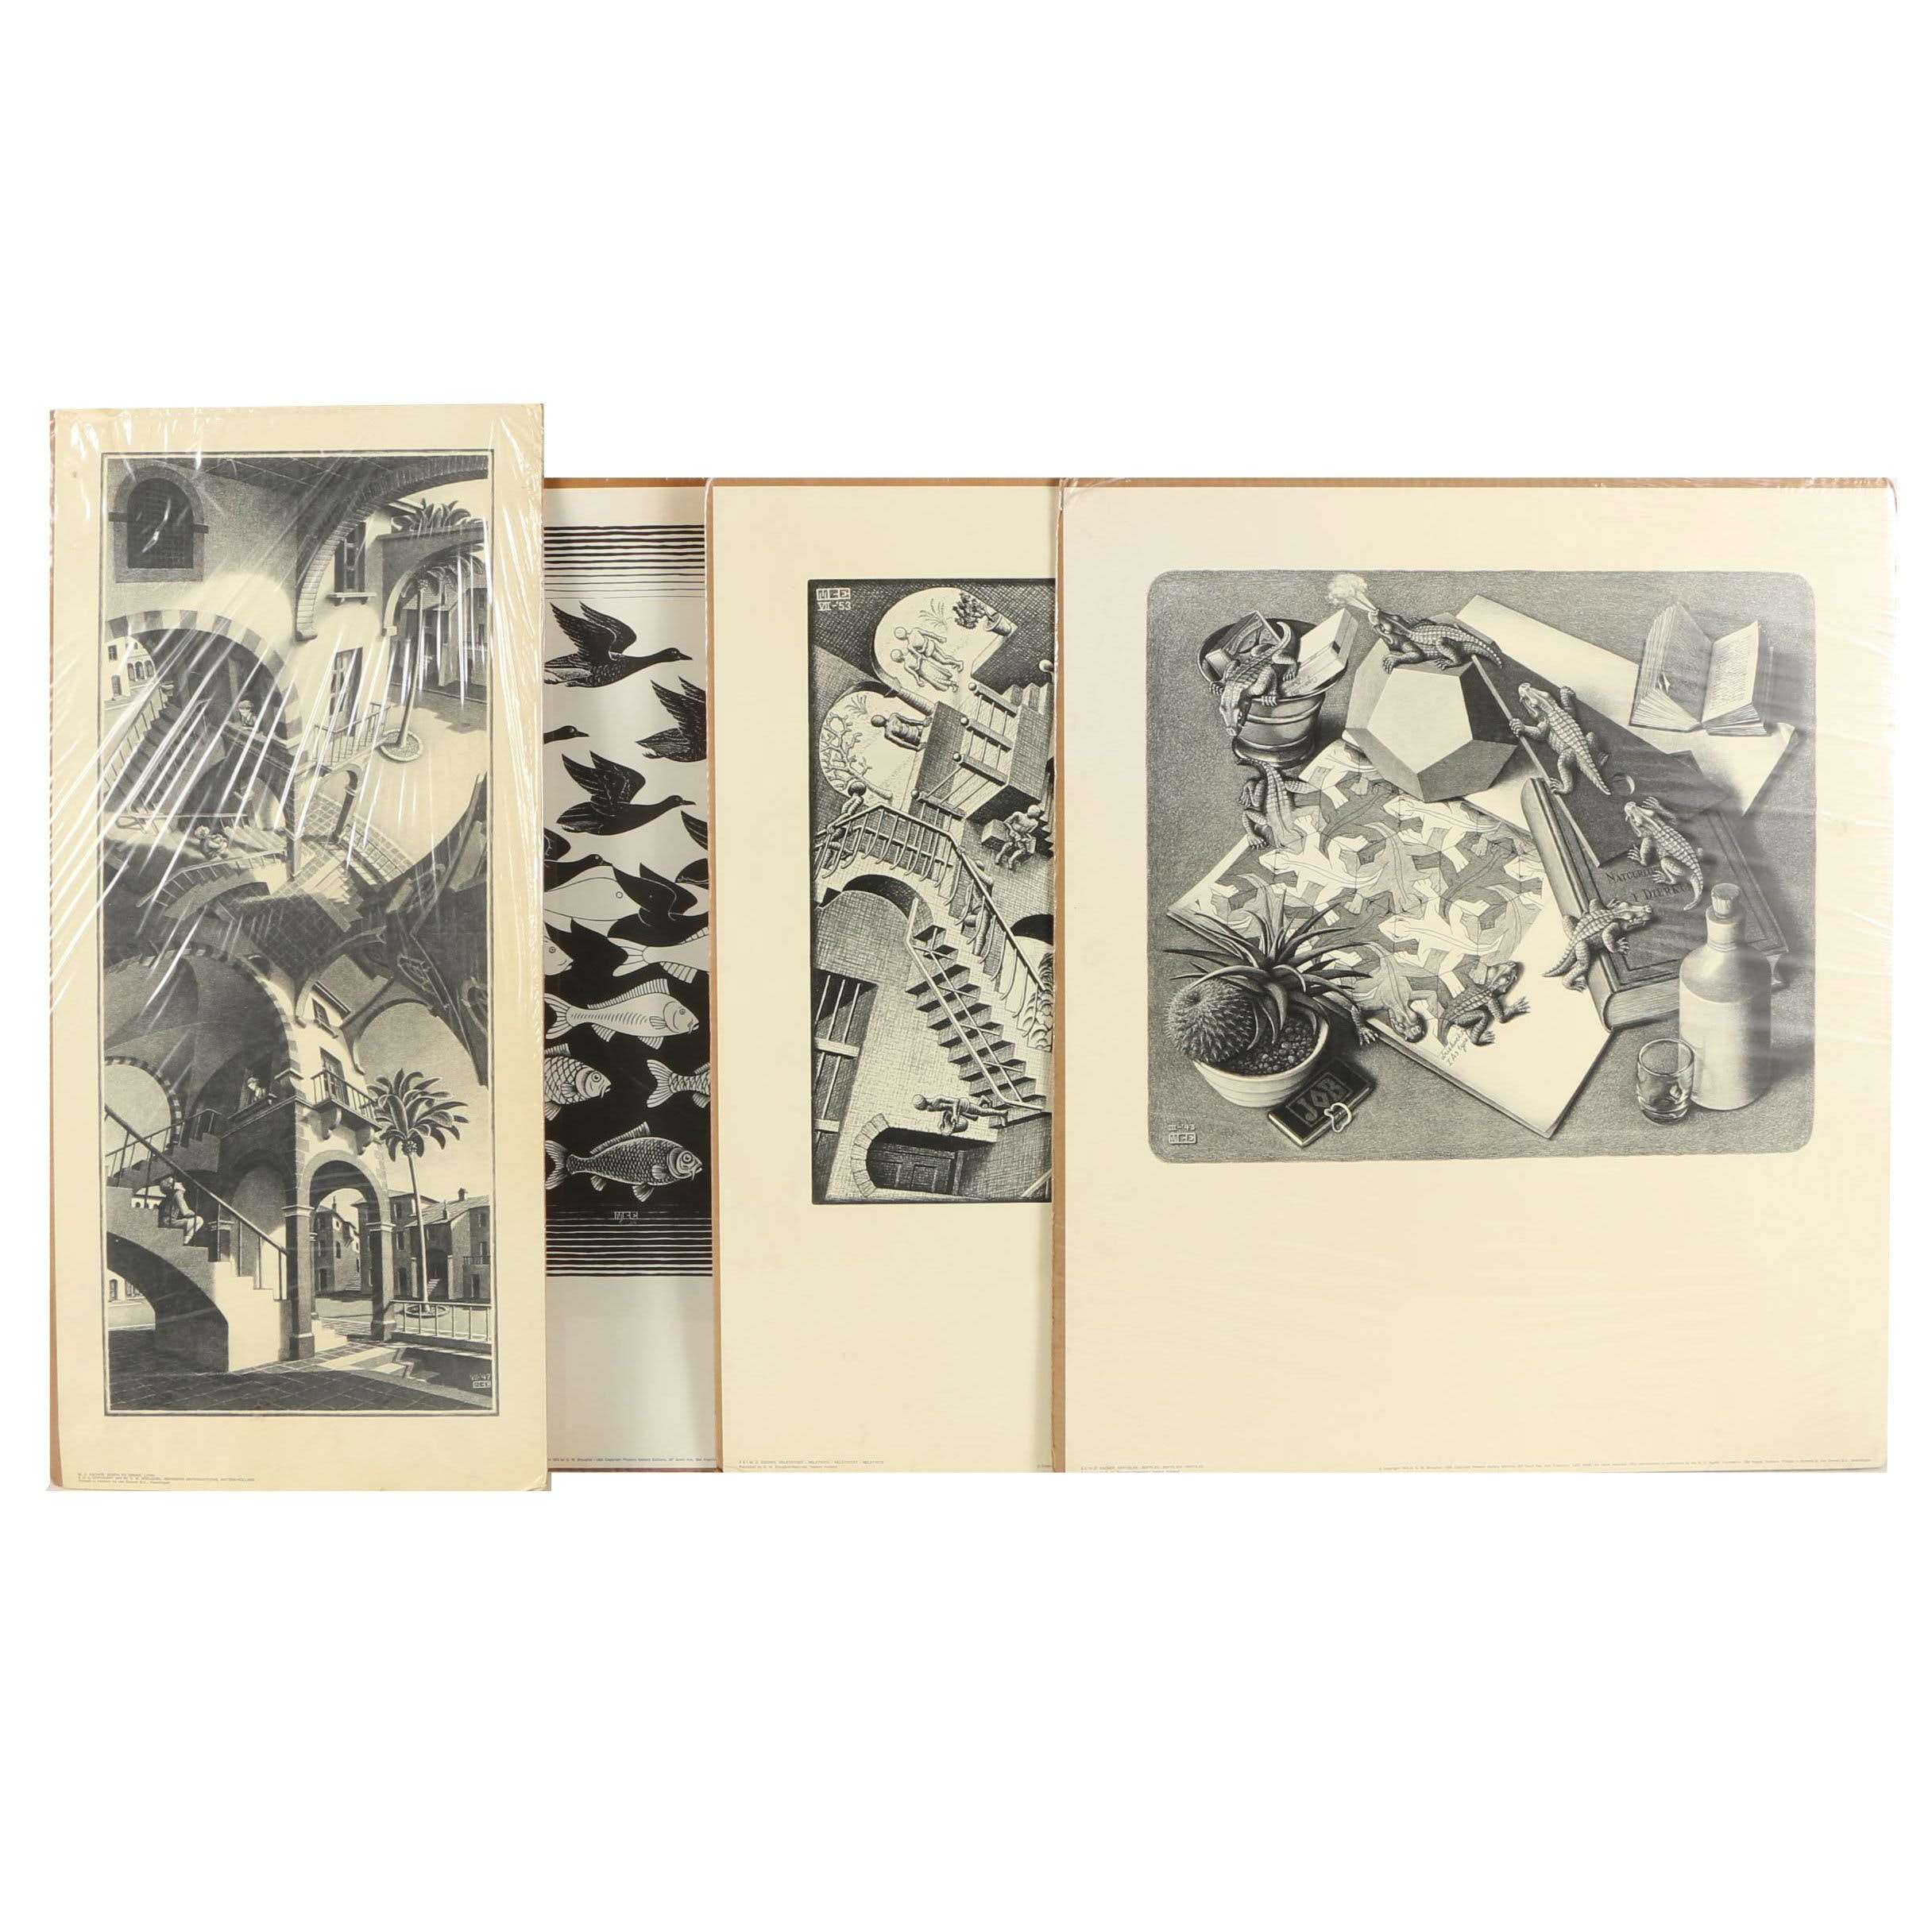 Collection of Offset Lithographs on Paper after M.C. Escher